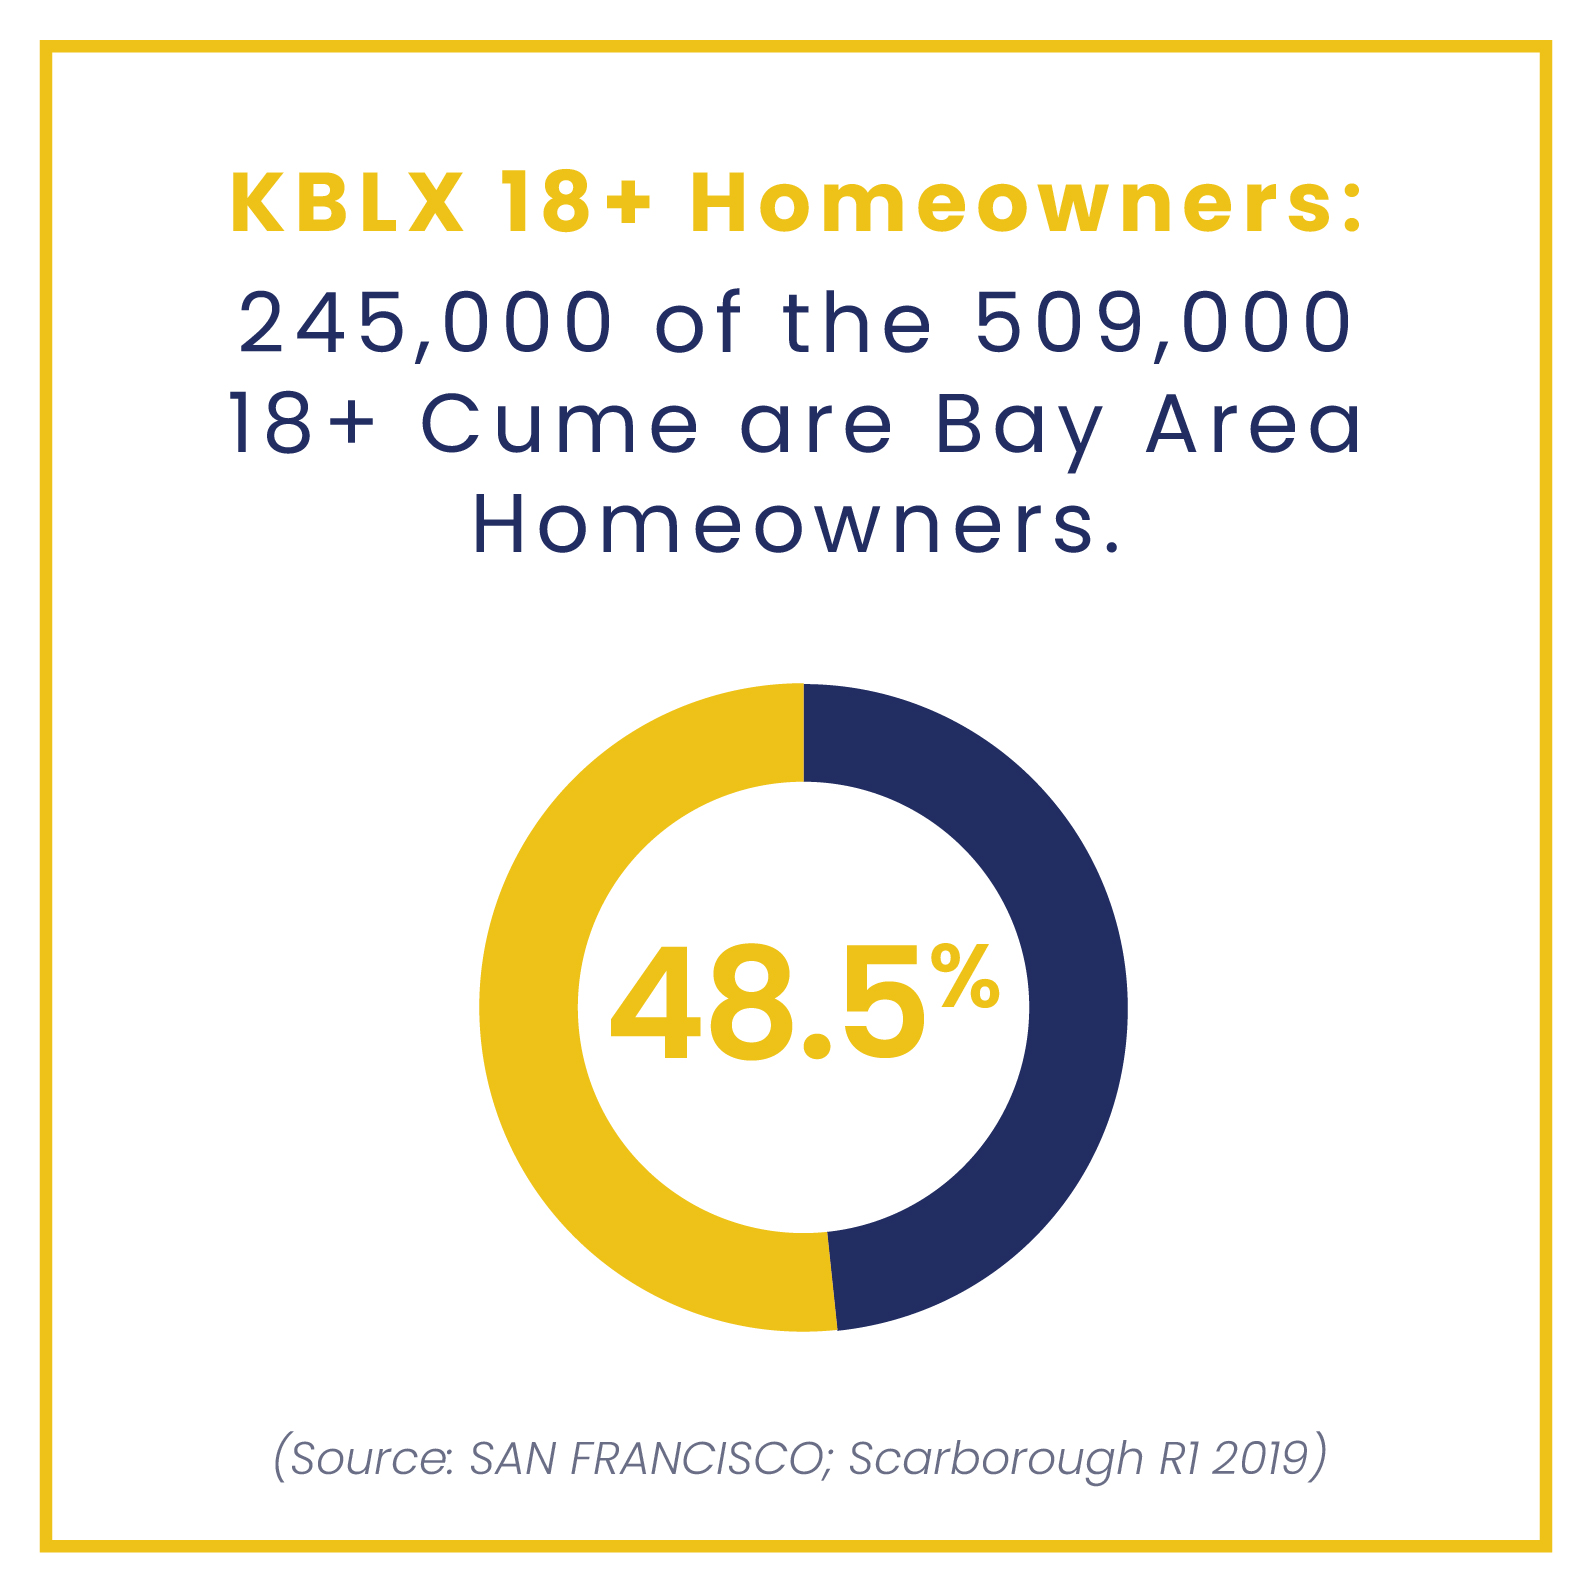 KBLX reaching bay area homeowners